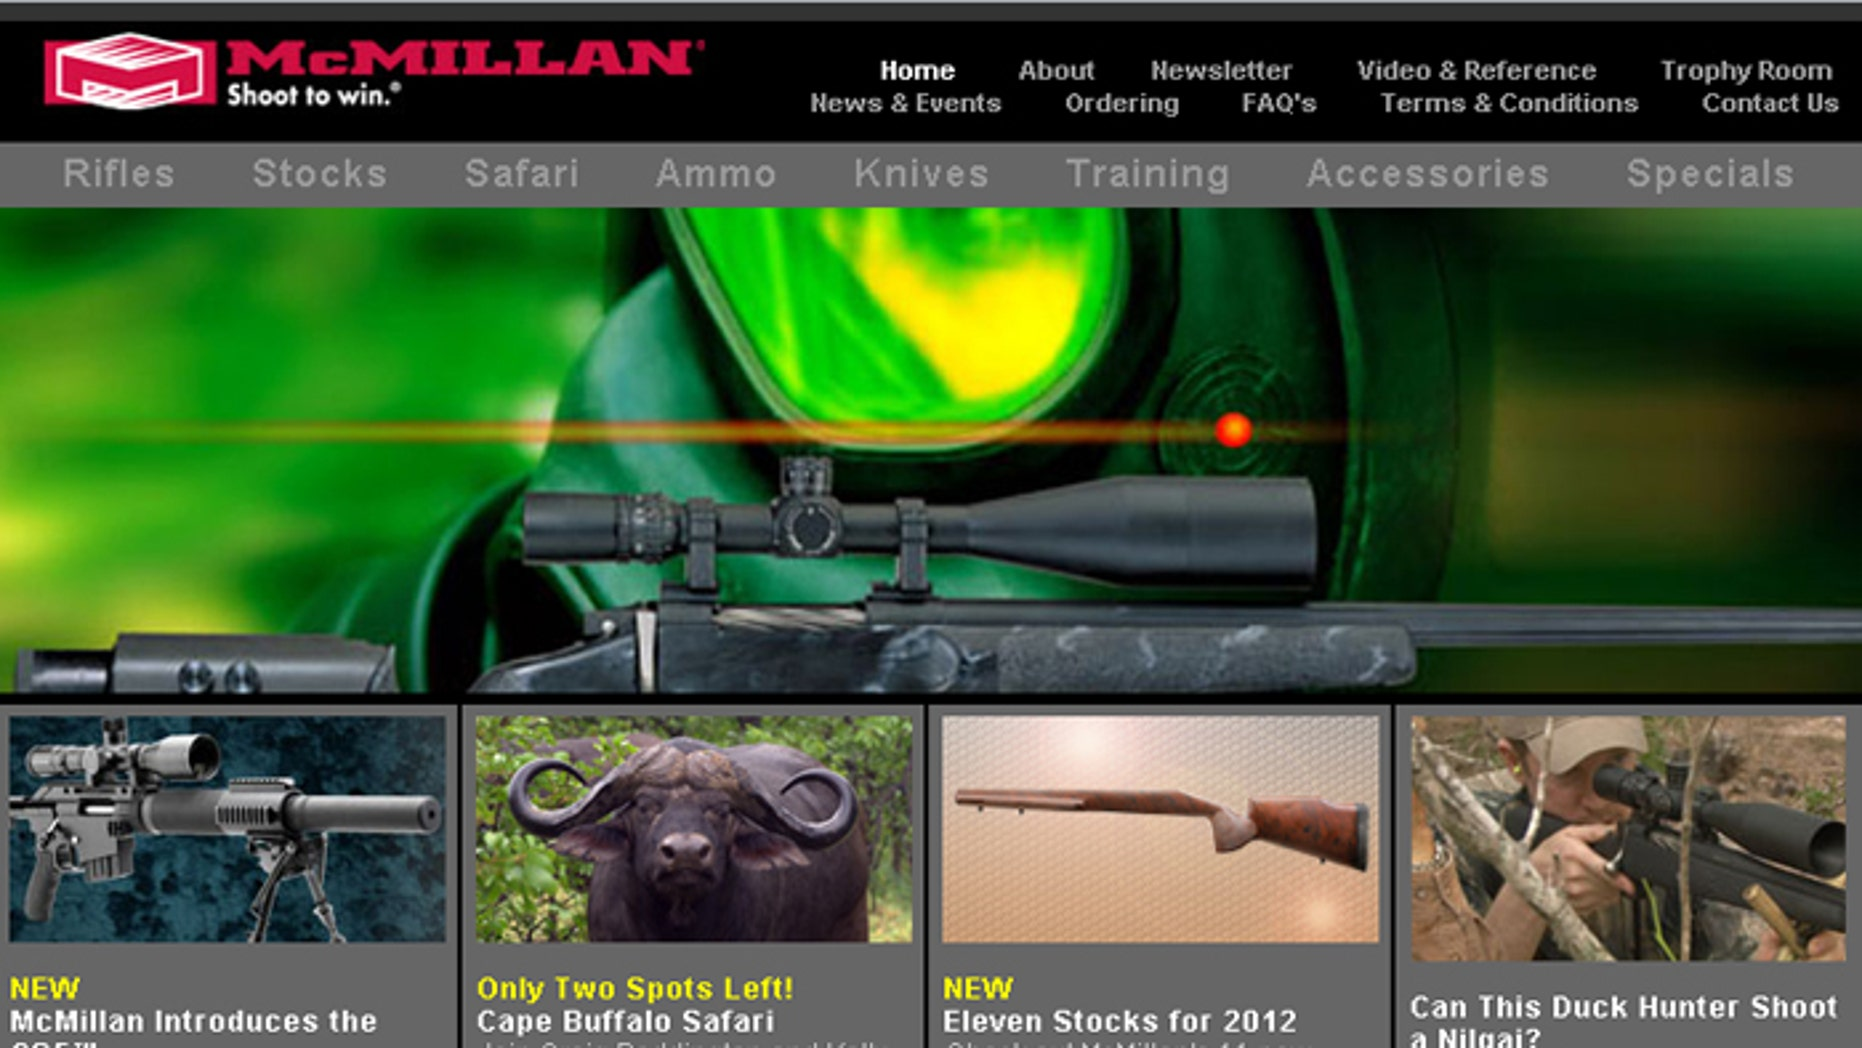 This screenshot shows the website for McMillian, a gun manufacturer that says Bank of America objected to its type of business.